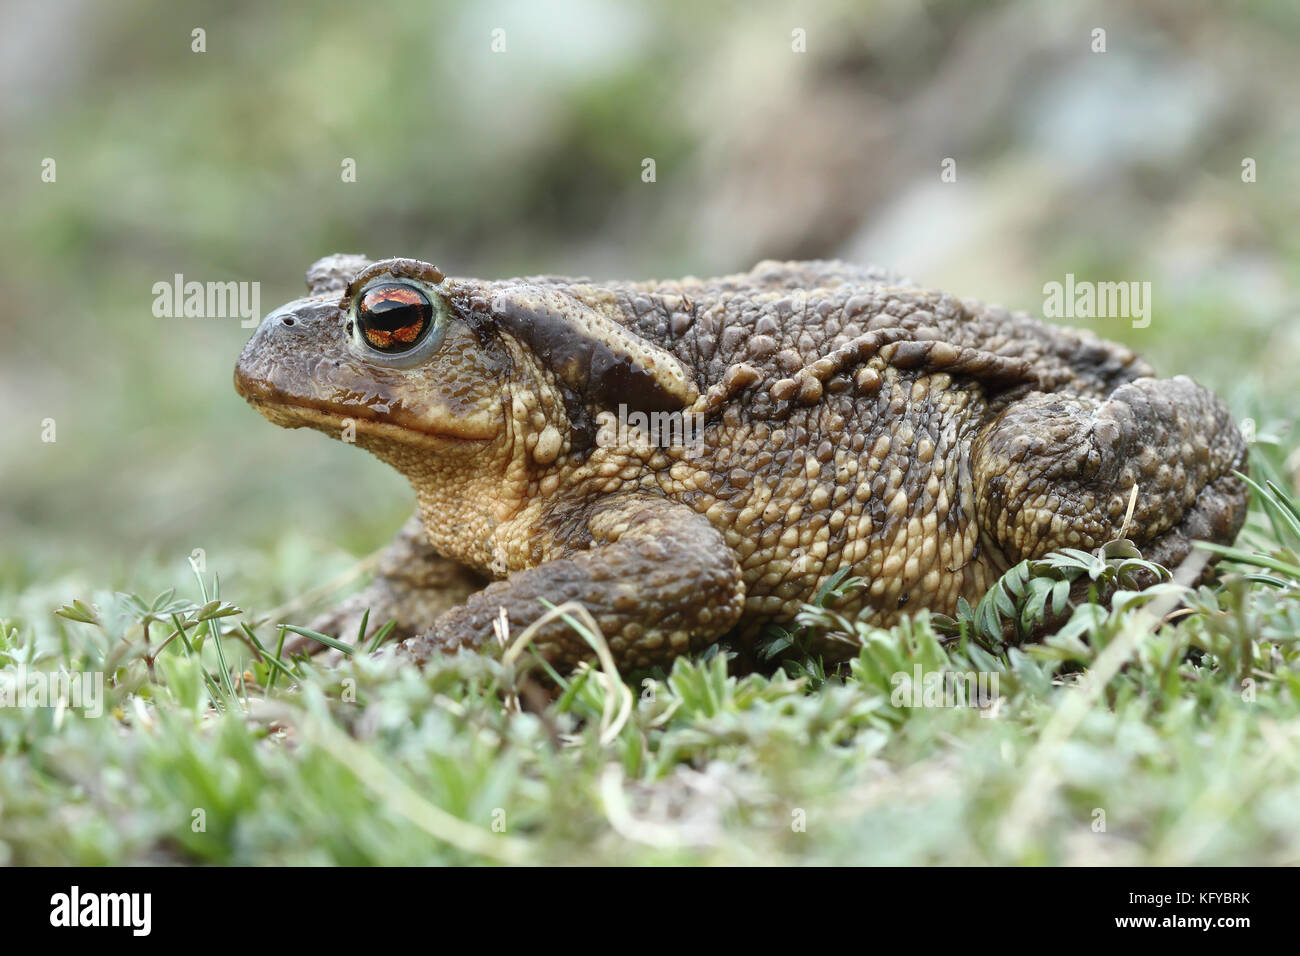 Common Toad (Bufo spinosus) Stock Photo